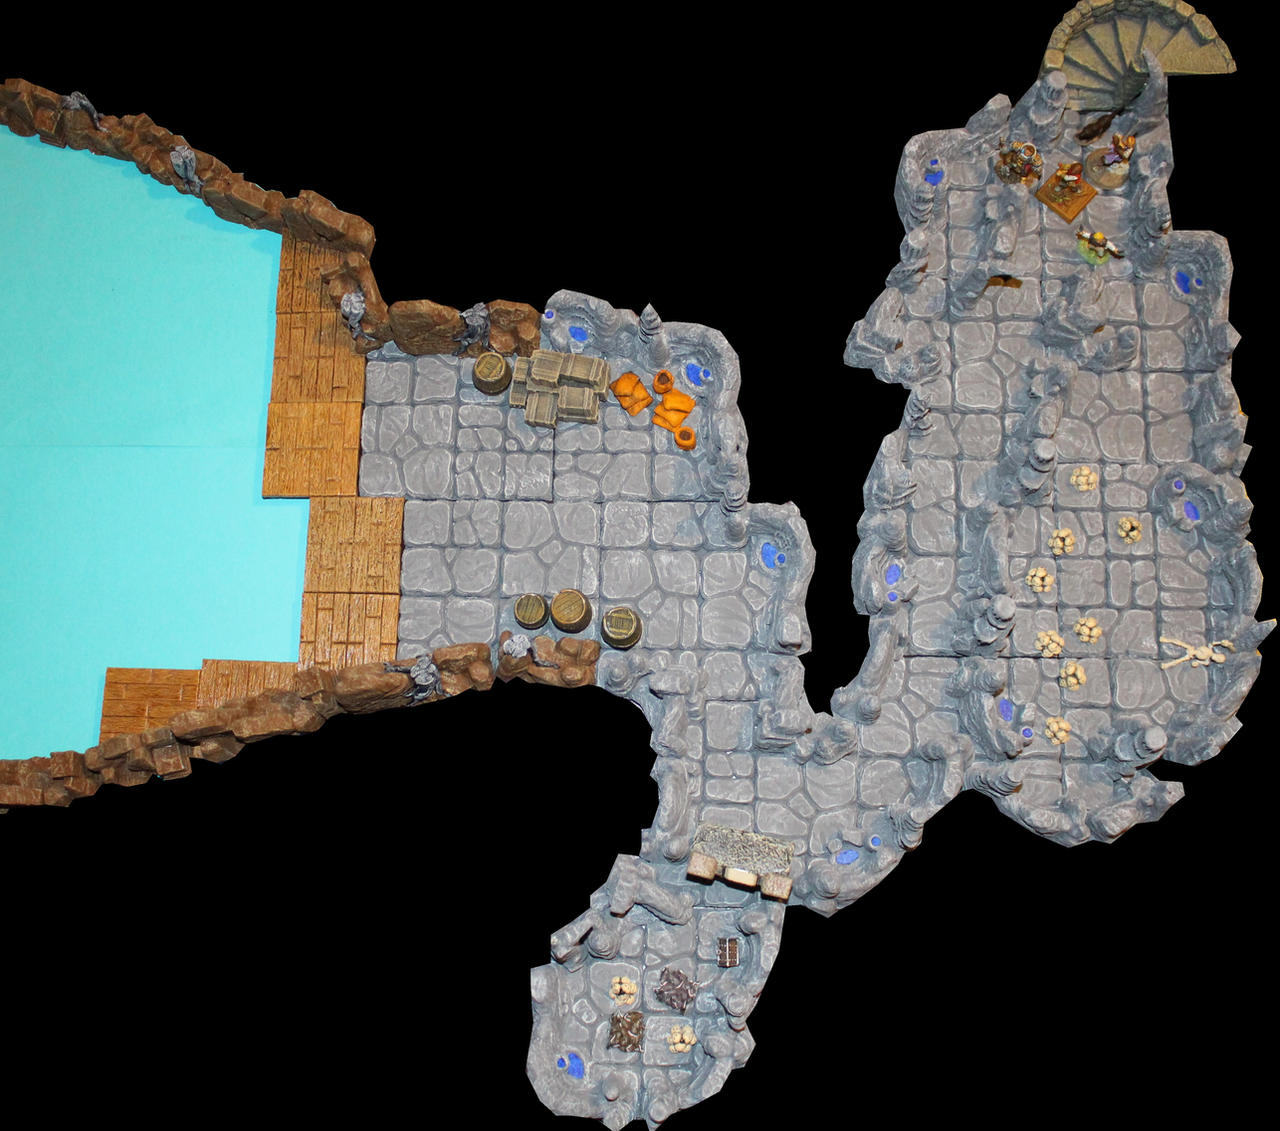 Pathfinder Foxglove manor to Lost End cave by MrVergee